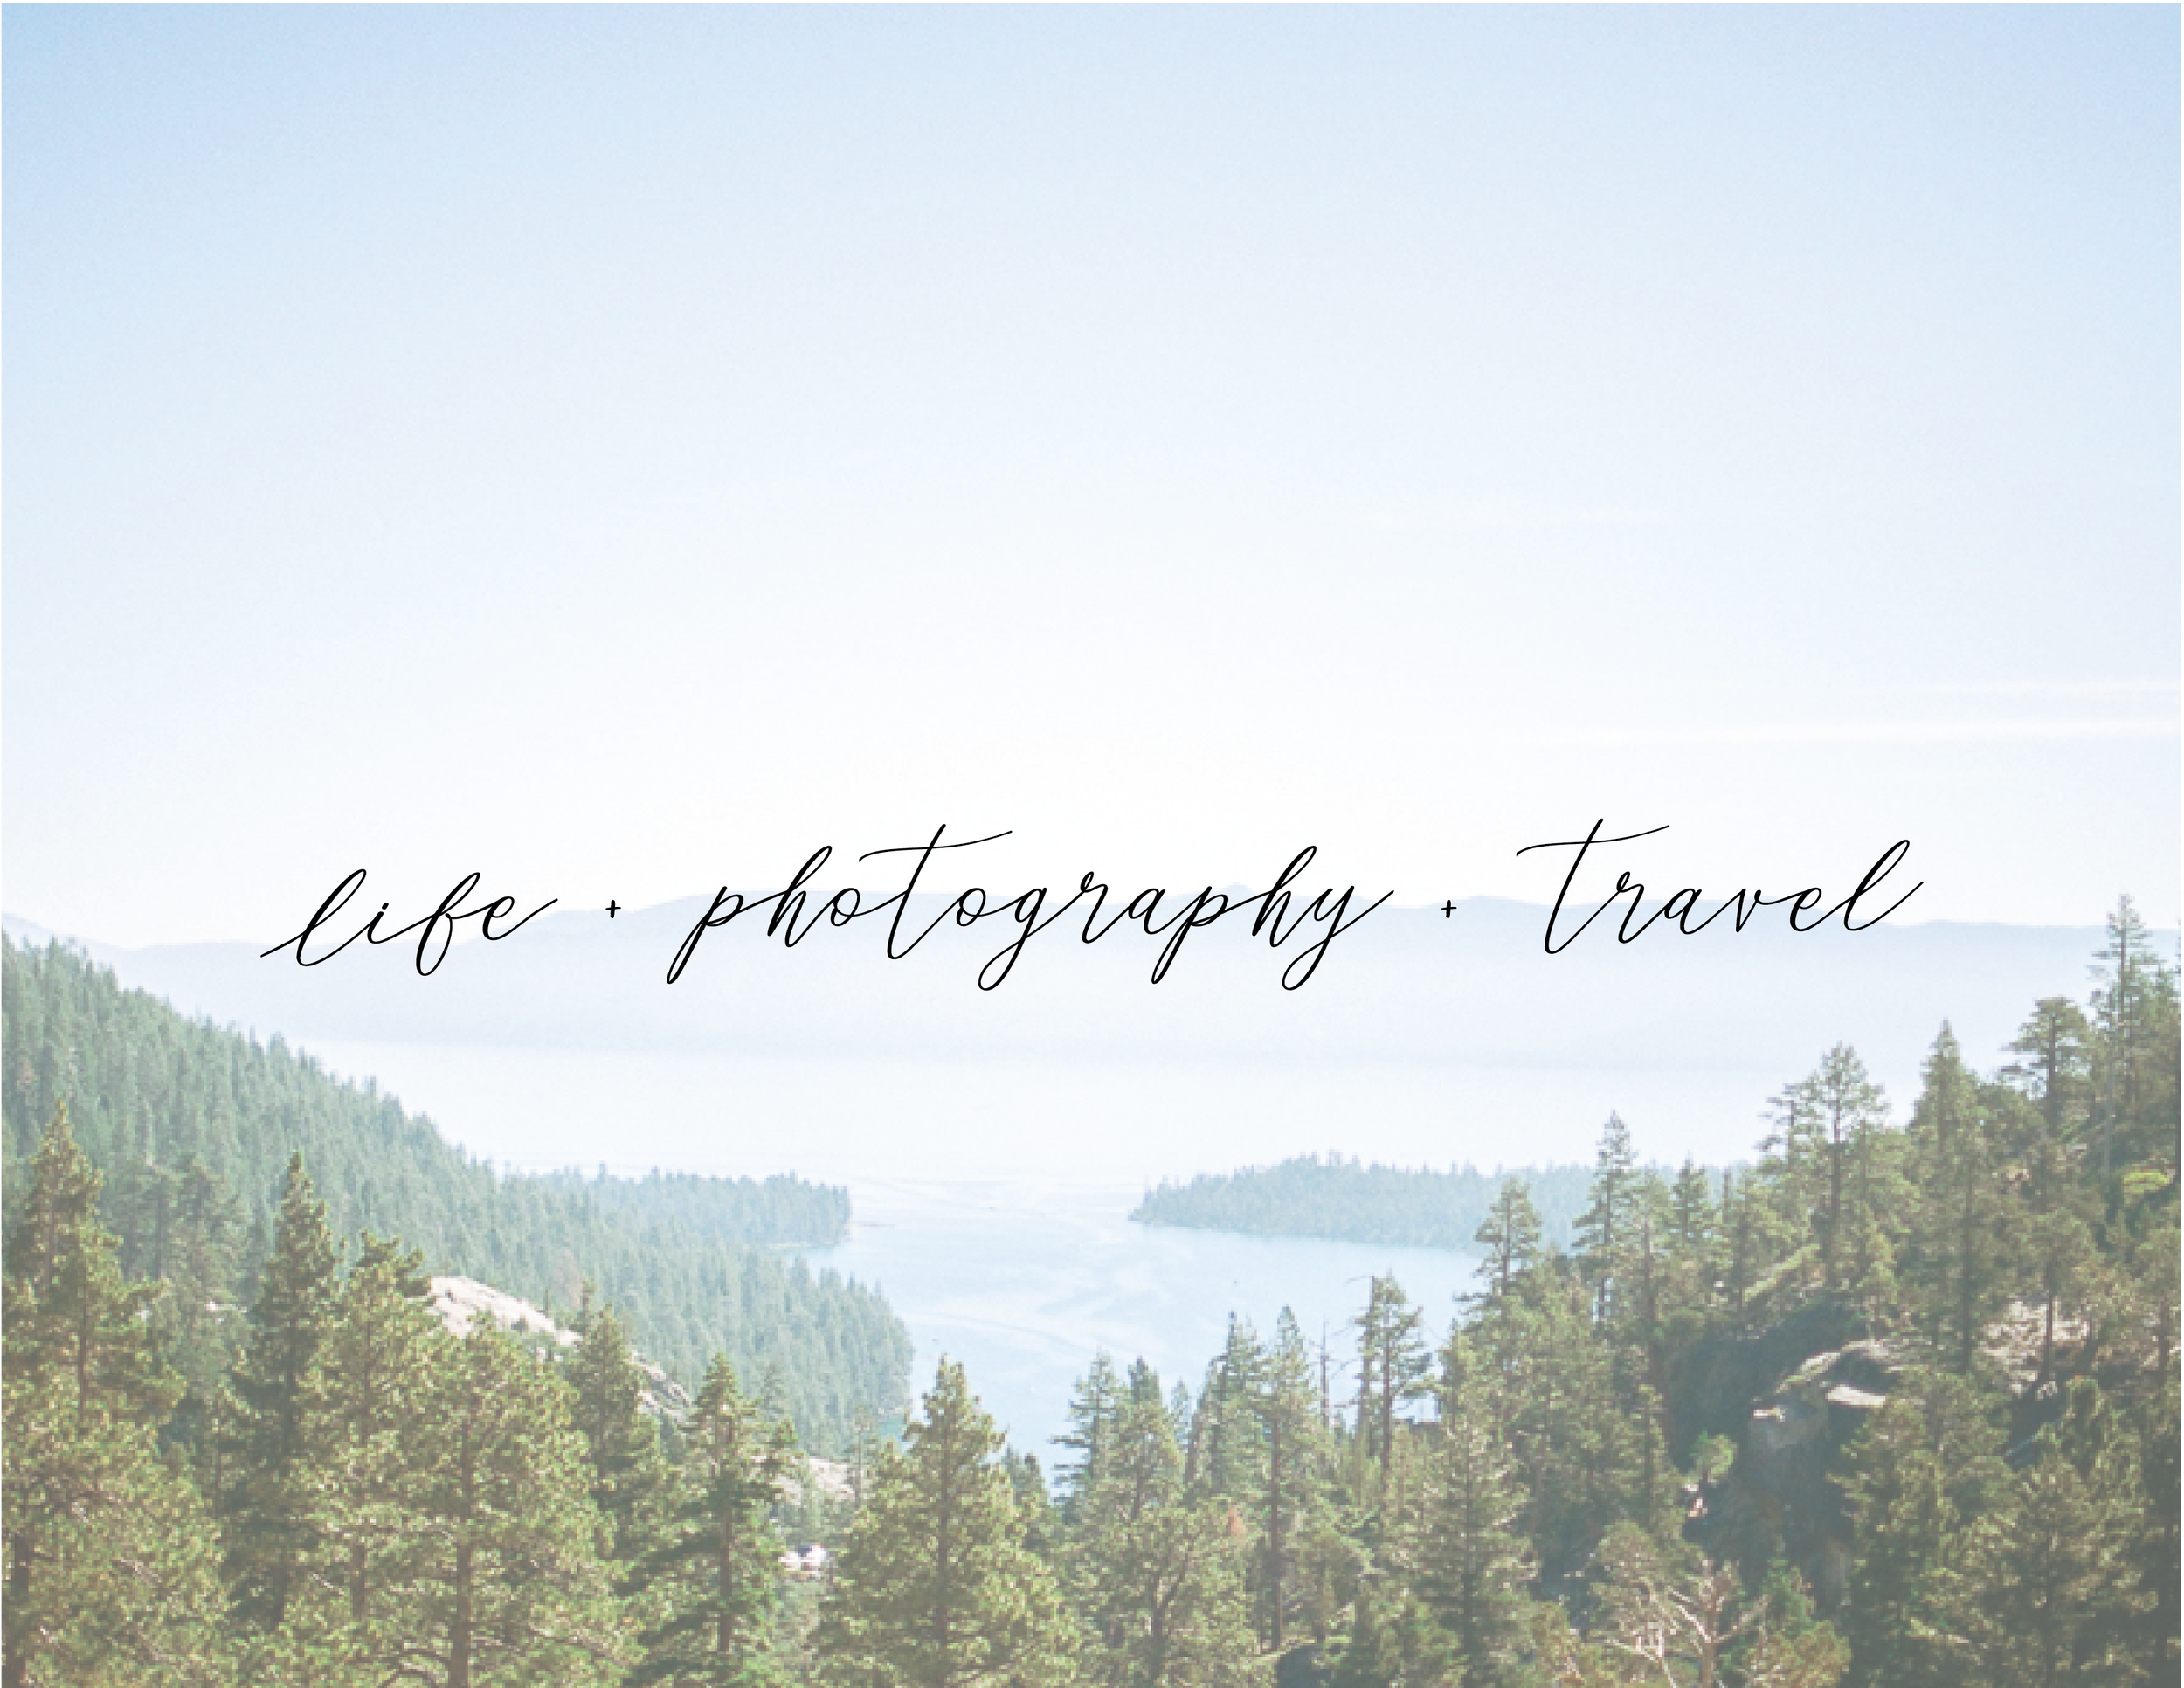 Heather Selzer - Northern California Photographer based in Chico, CA